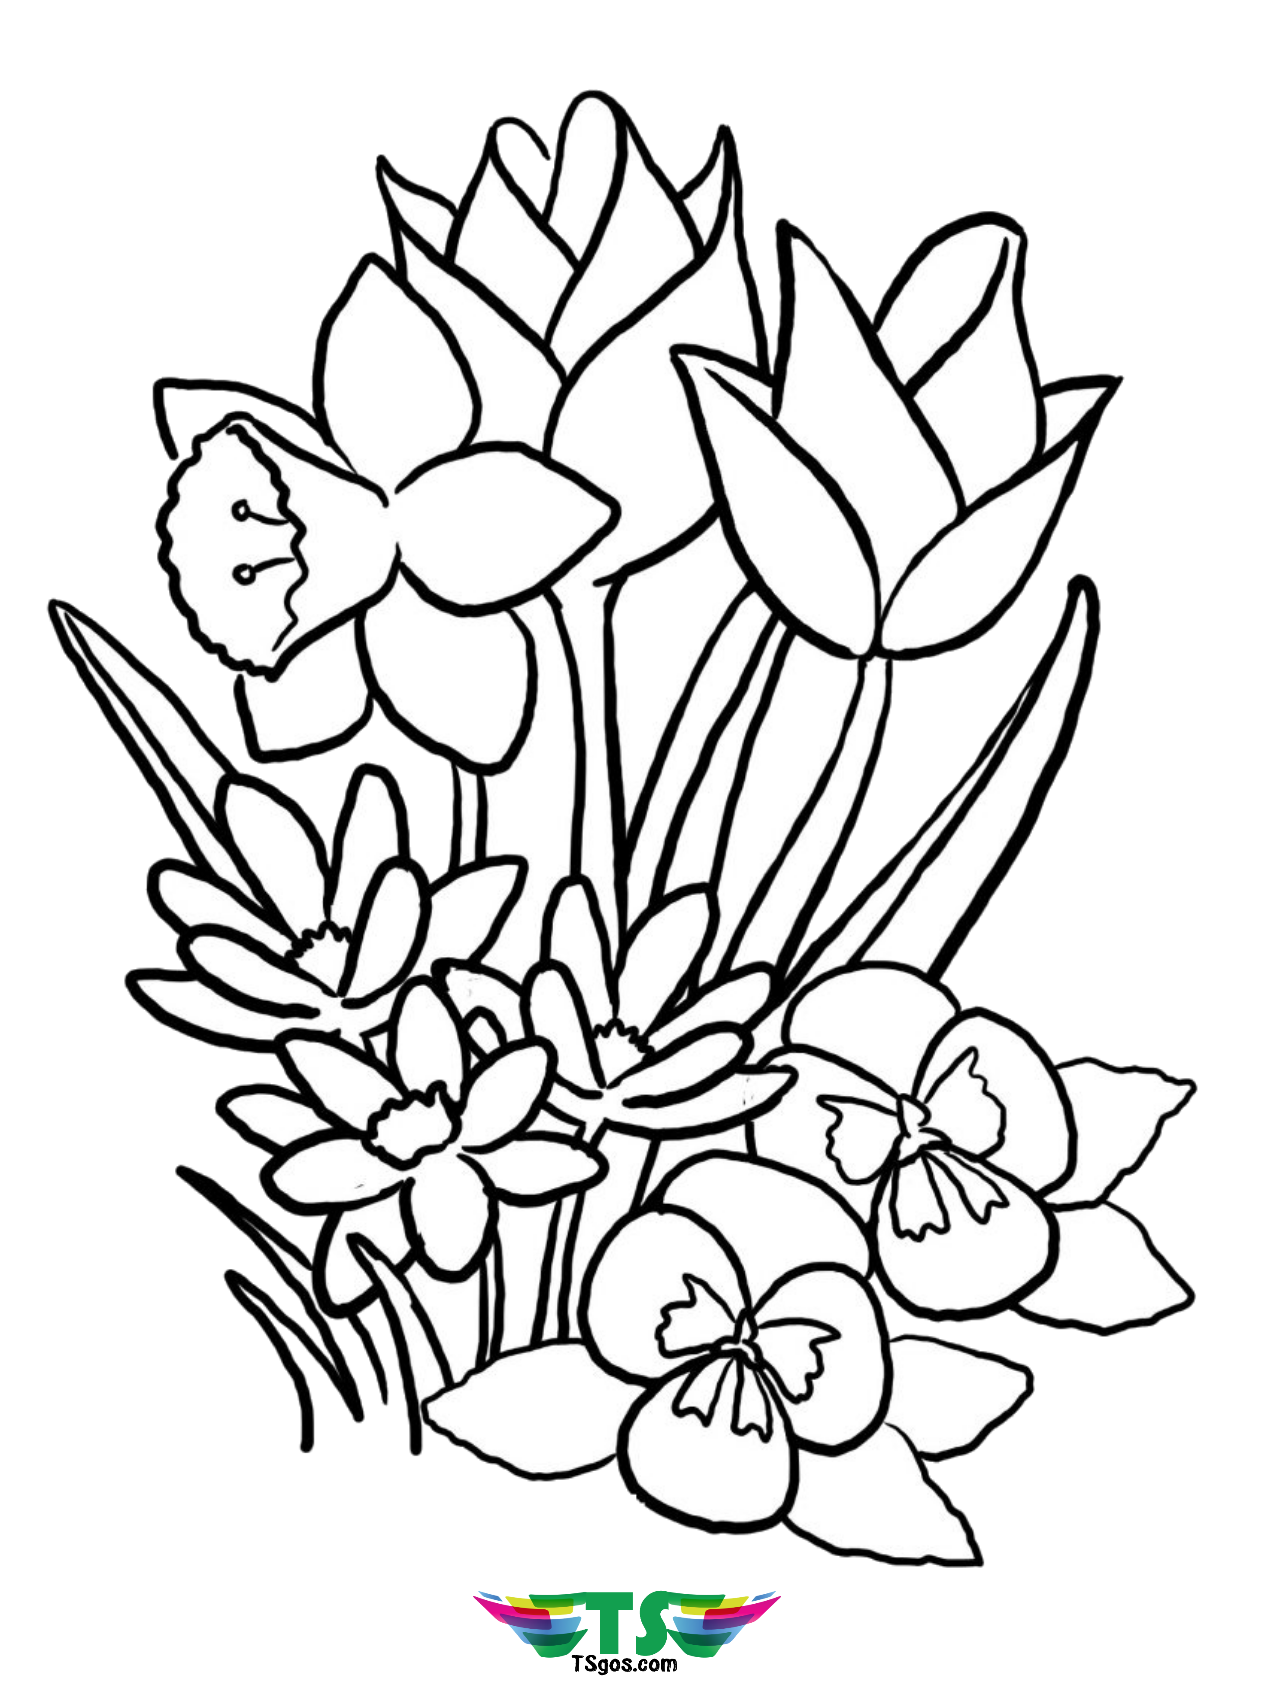 flowers color pages free download to print beautiful spring flower coloring pages color flowers